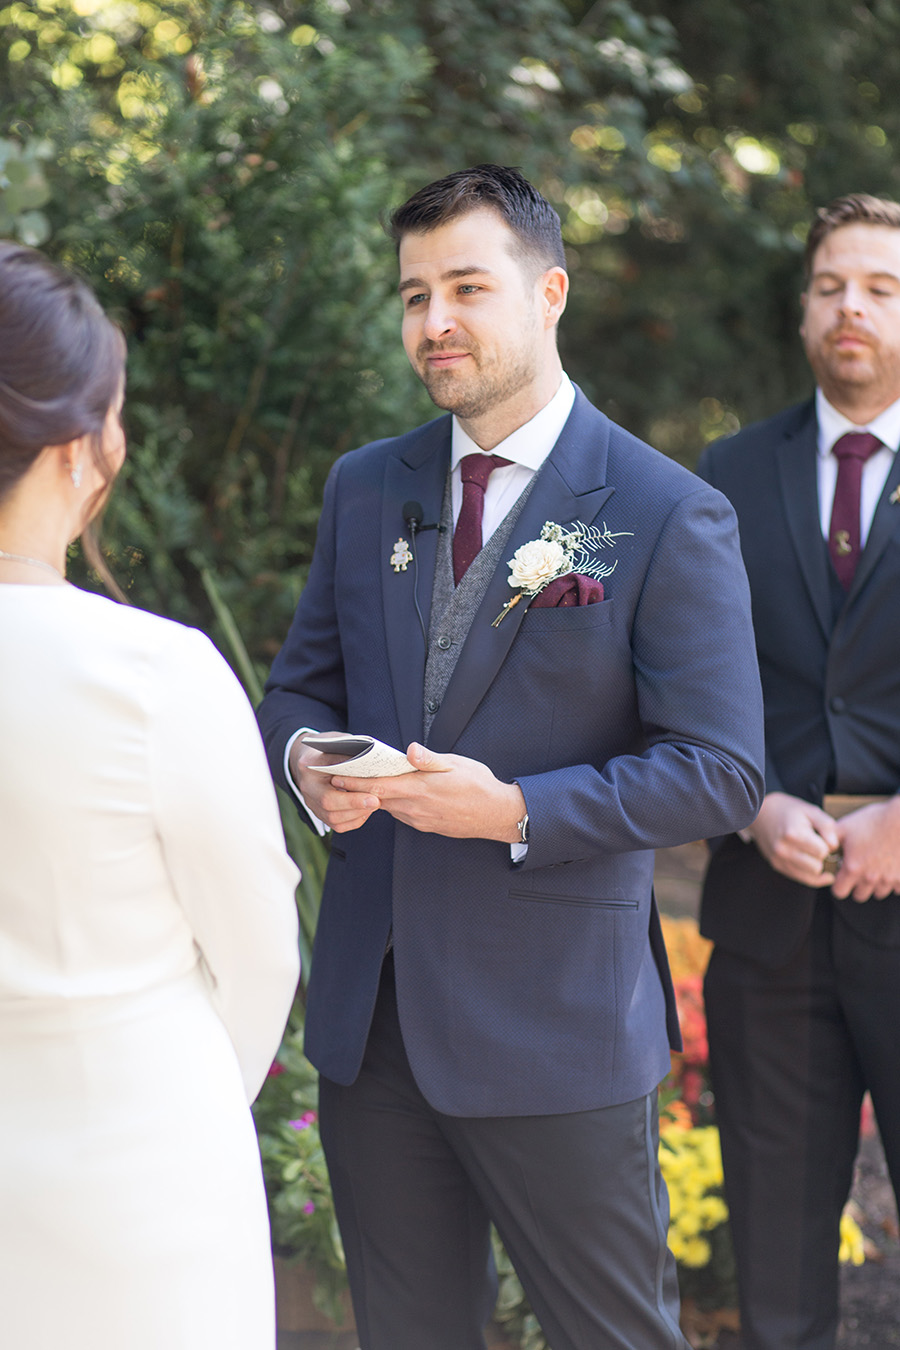 Groom reads his wedding vows at Olde Mill Inn